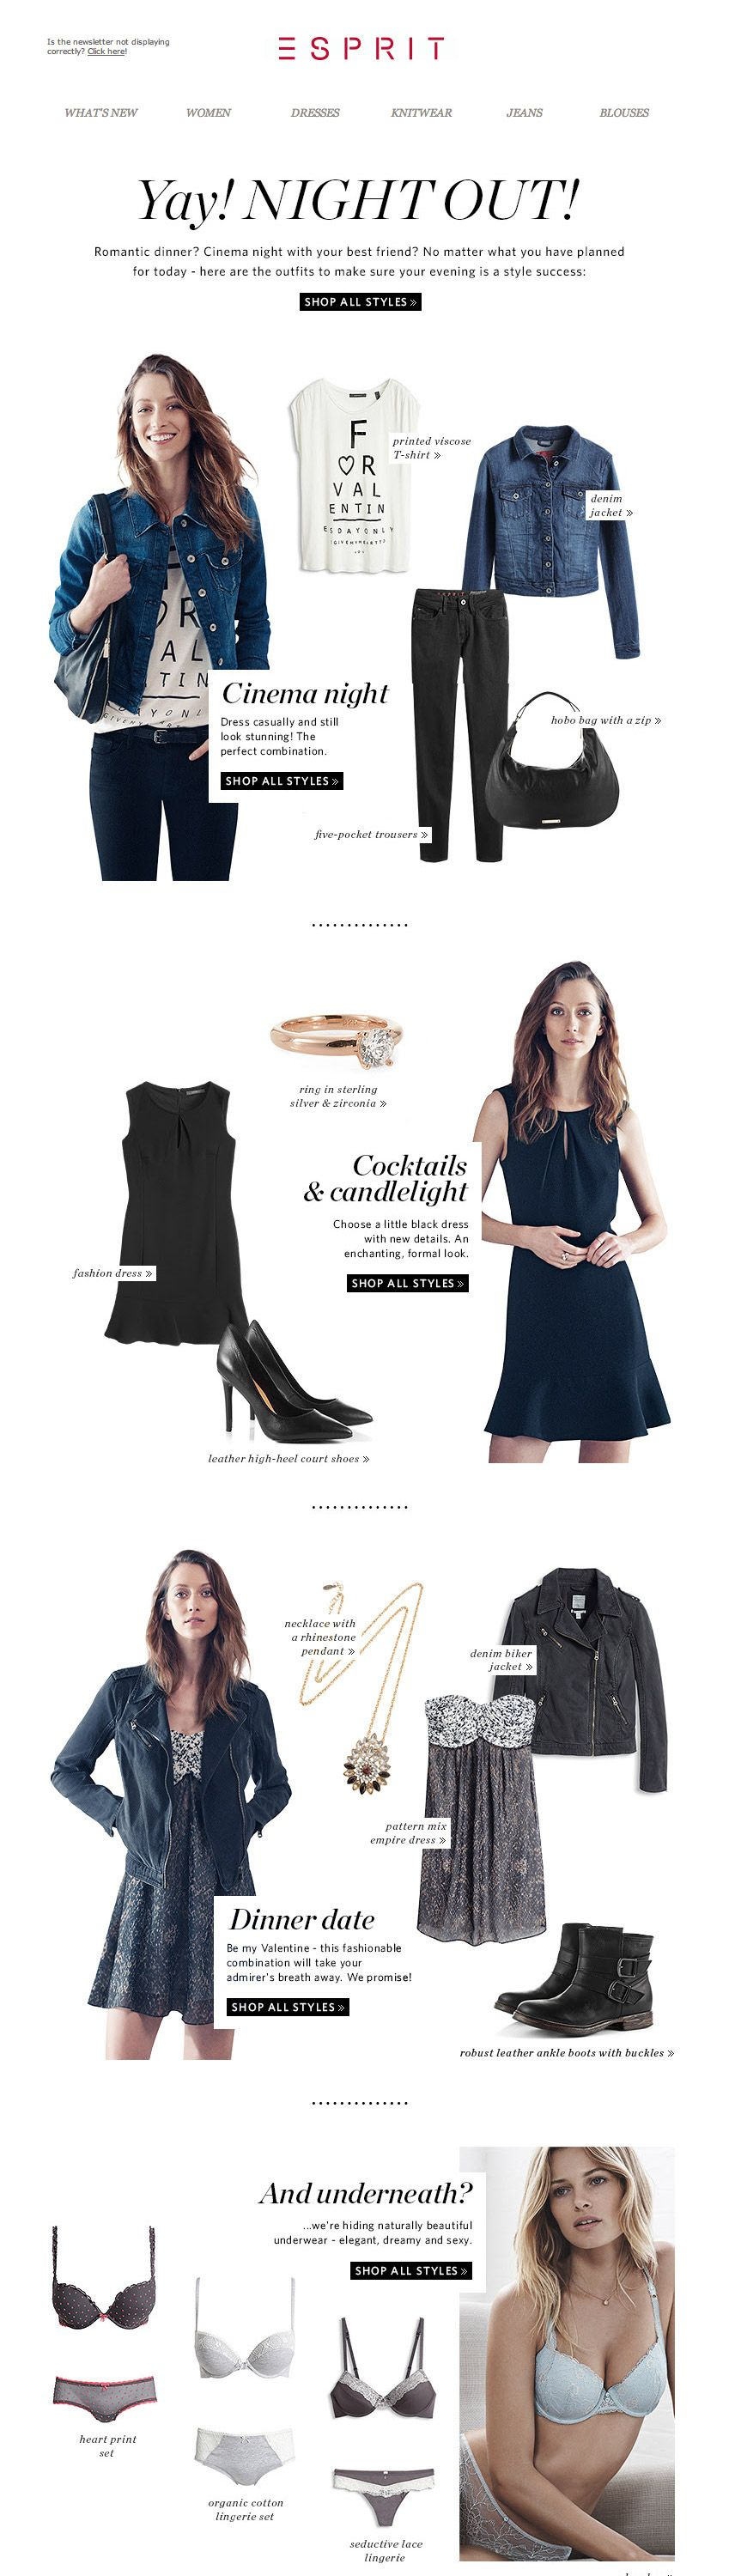 #newsletter Esprit 02.2014 Night out style || 70% SALE: maximum reductions!